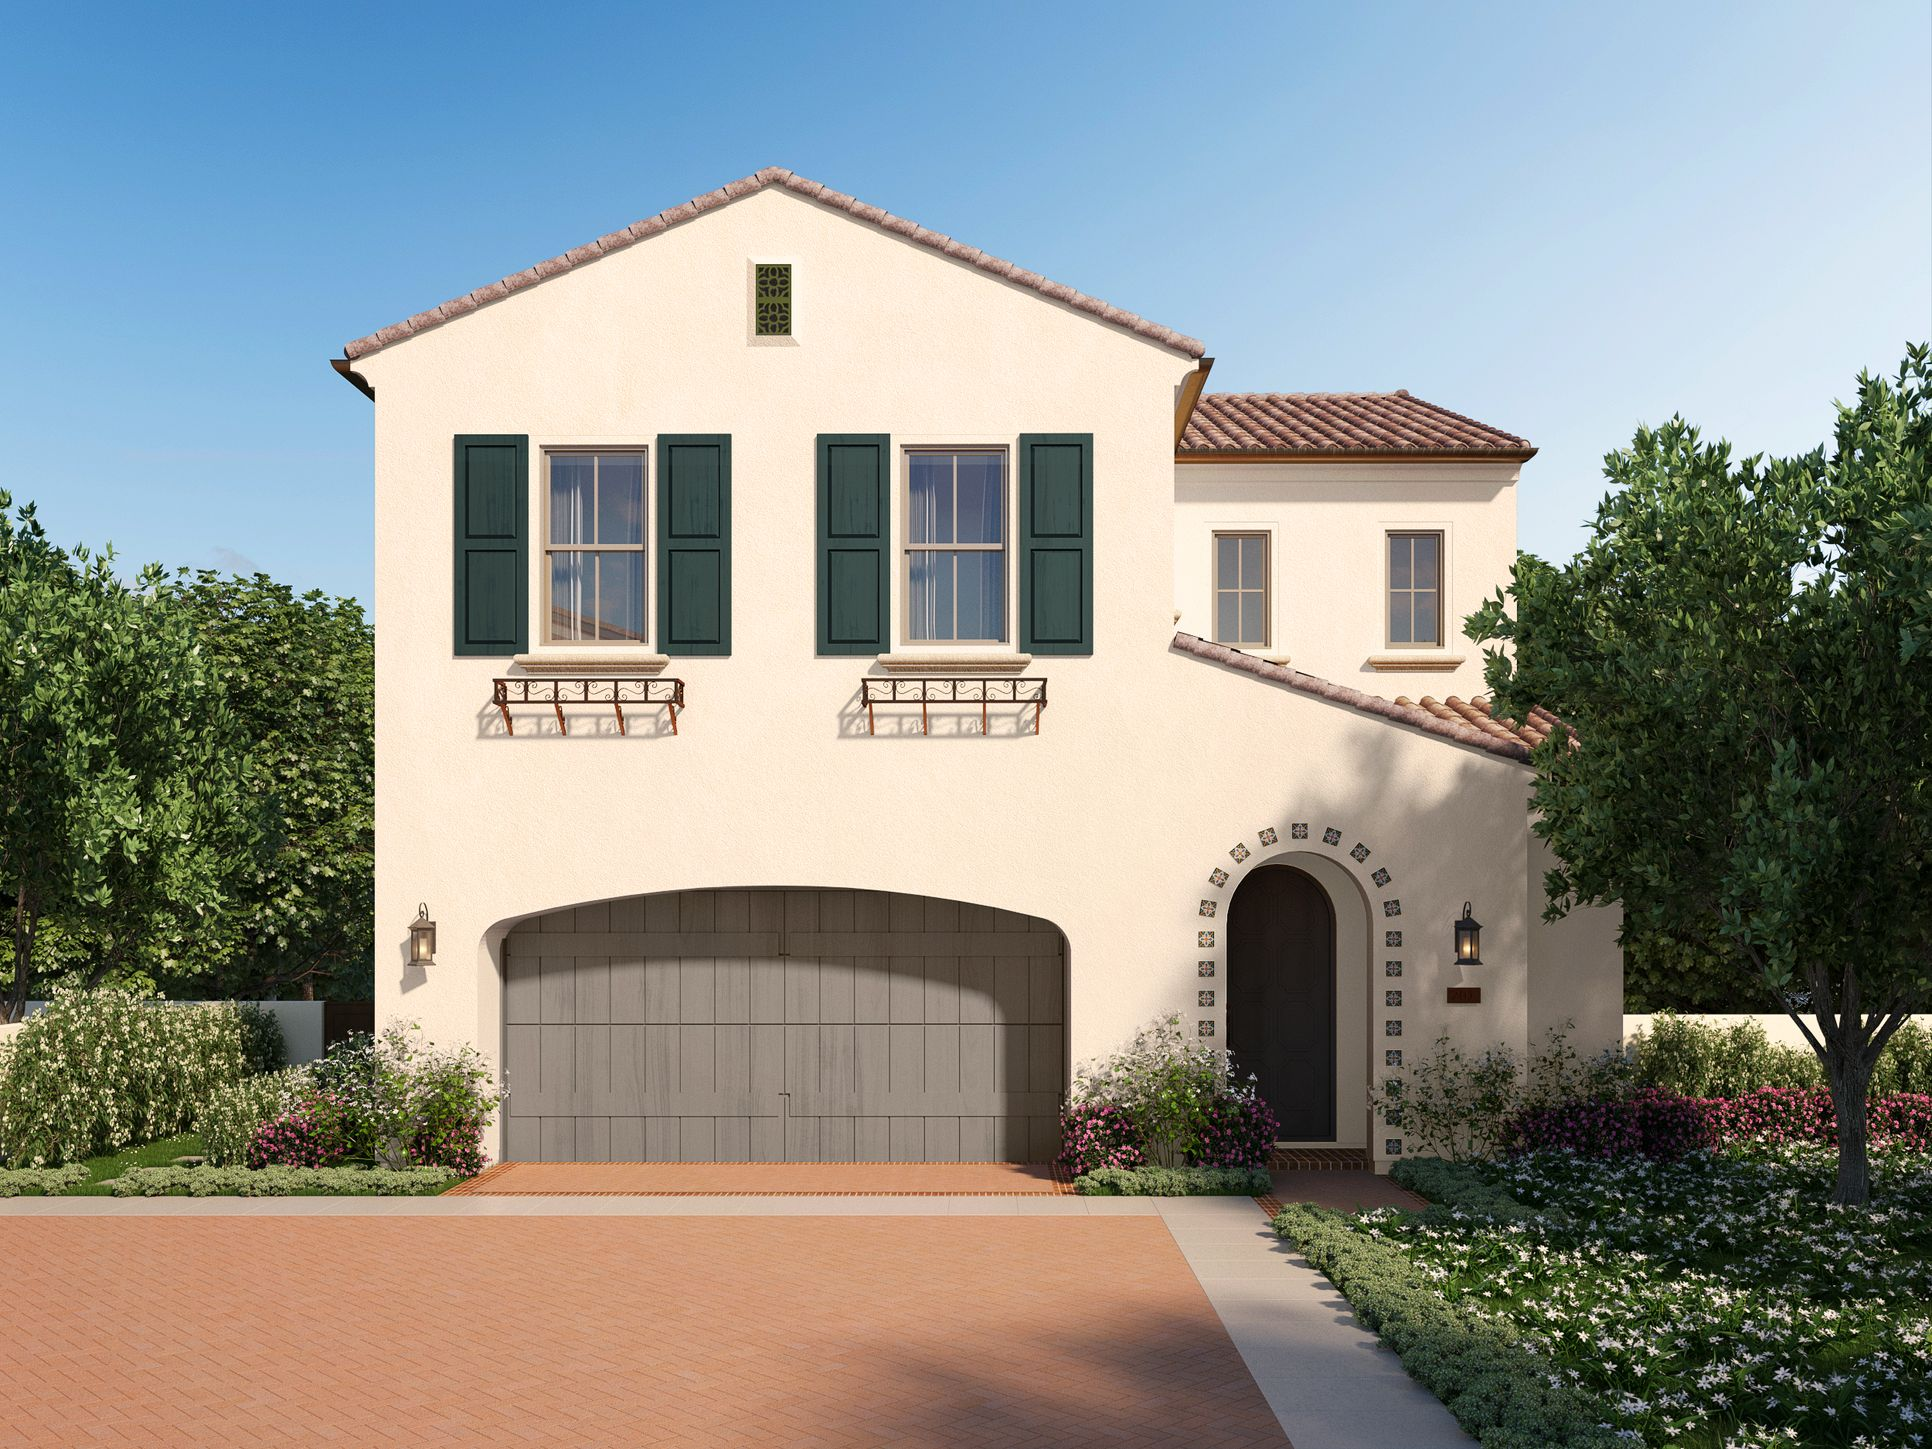 Residence 2 at Hillside - Italiante:Residence 2 at Hillside - Santa Barbara style